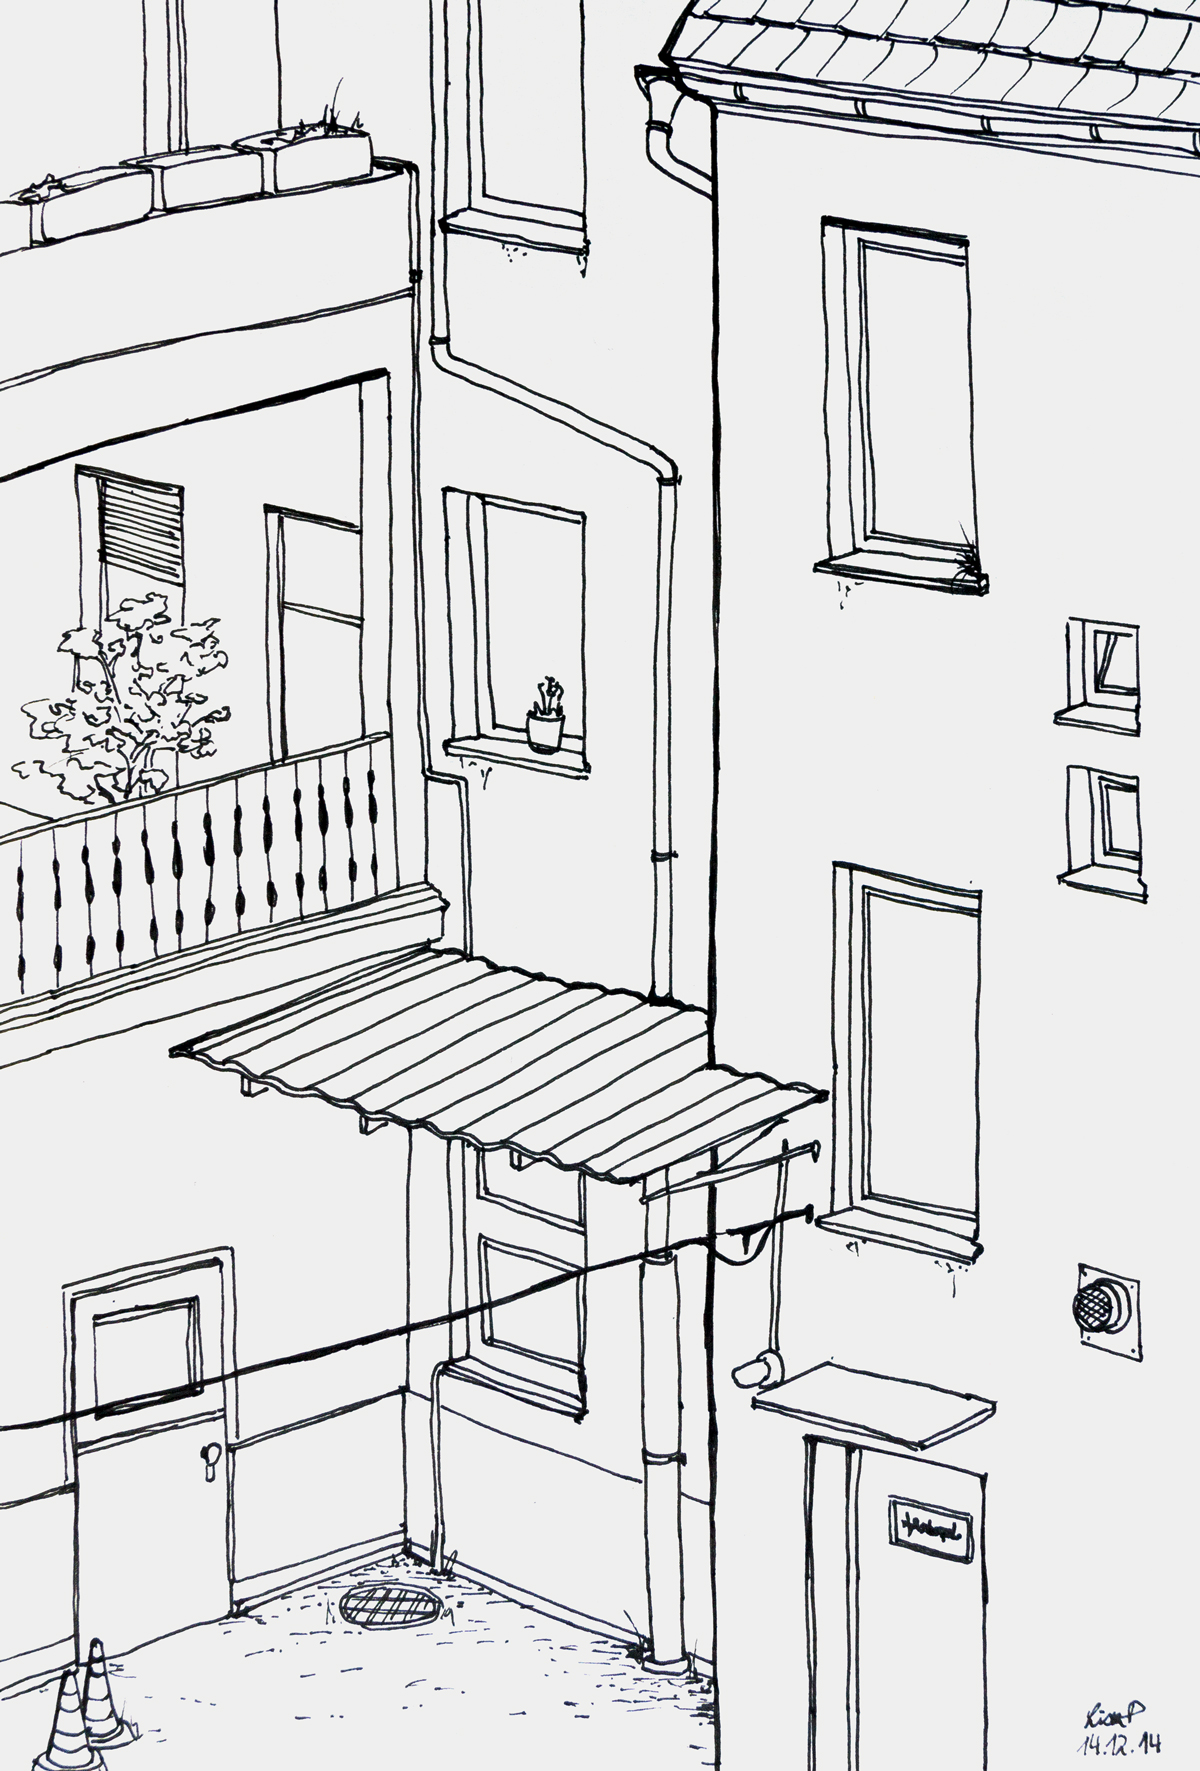 roofs2